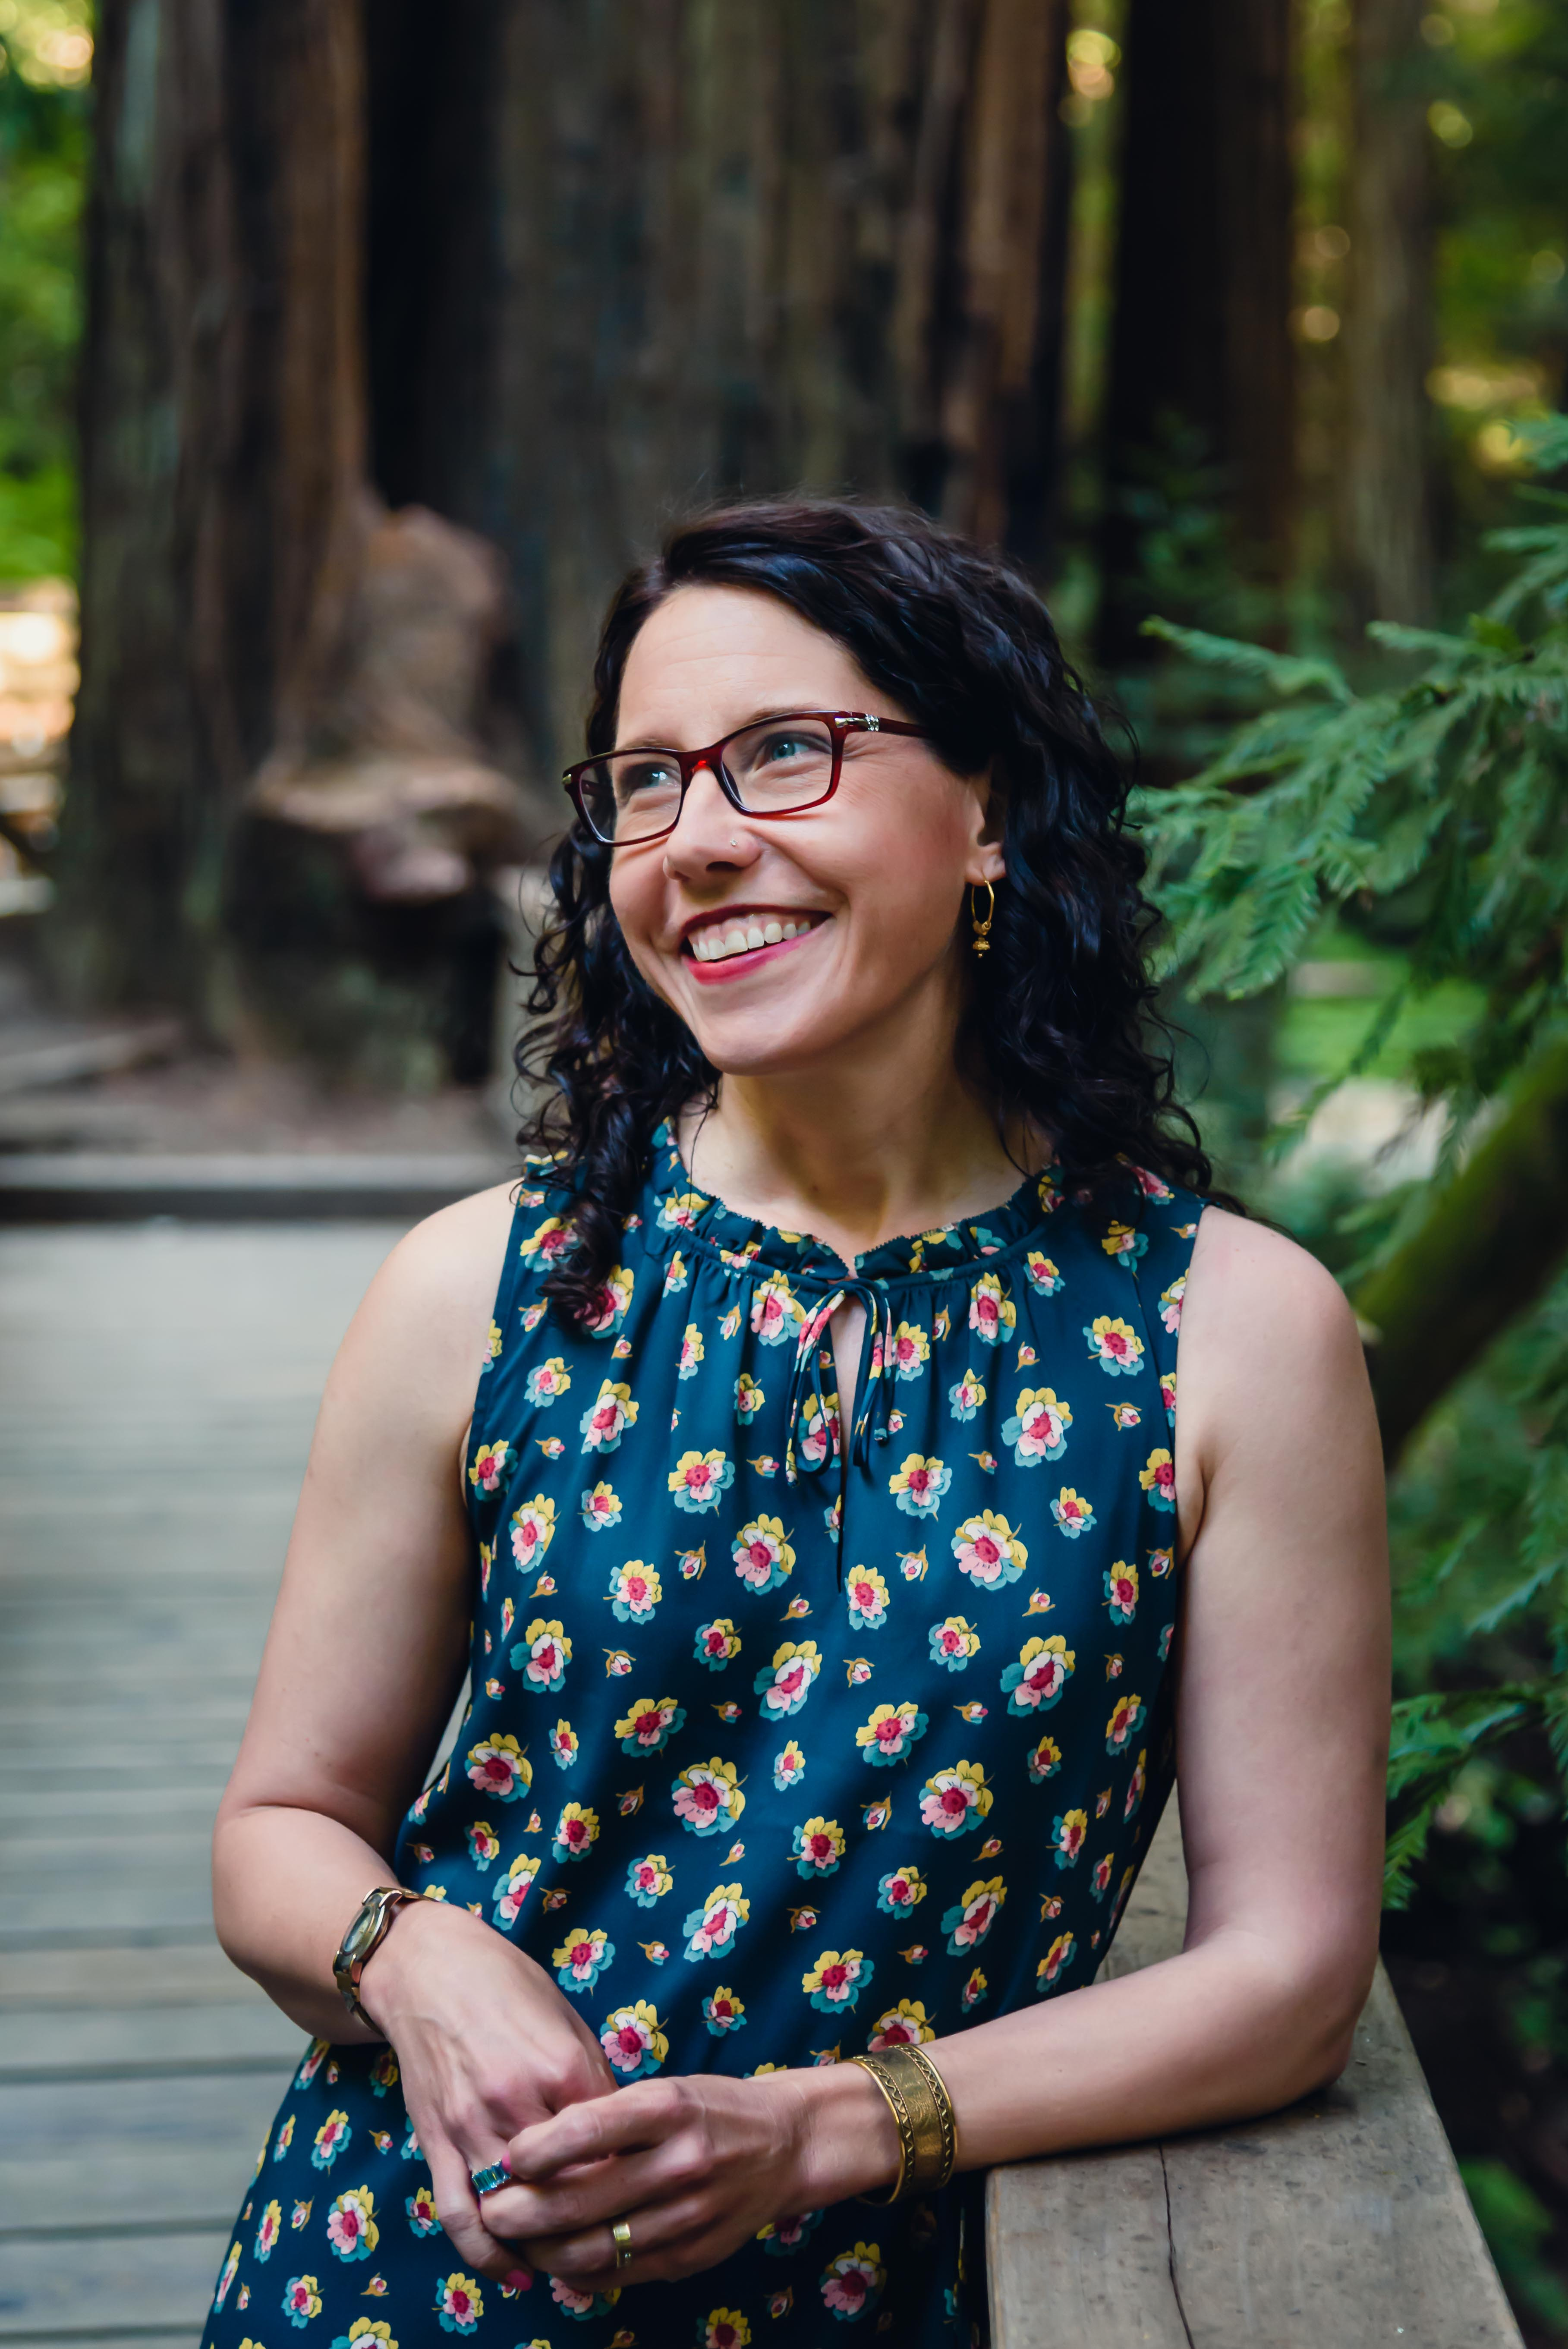 corporate social photography real candid natural light redwoods catherine brozena sincere earnest genuine